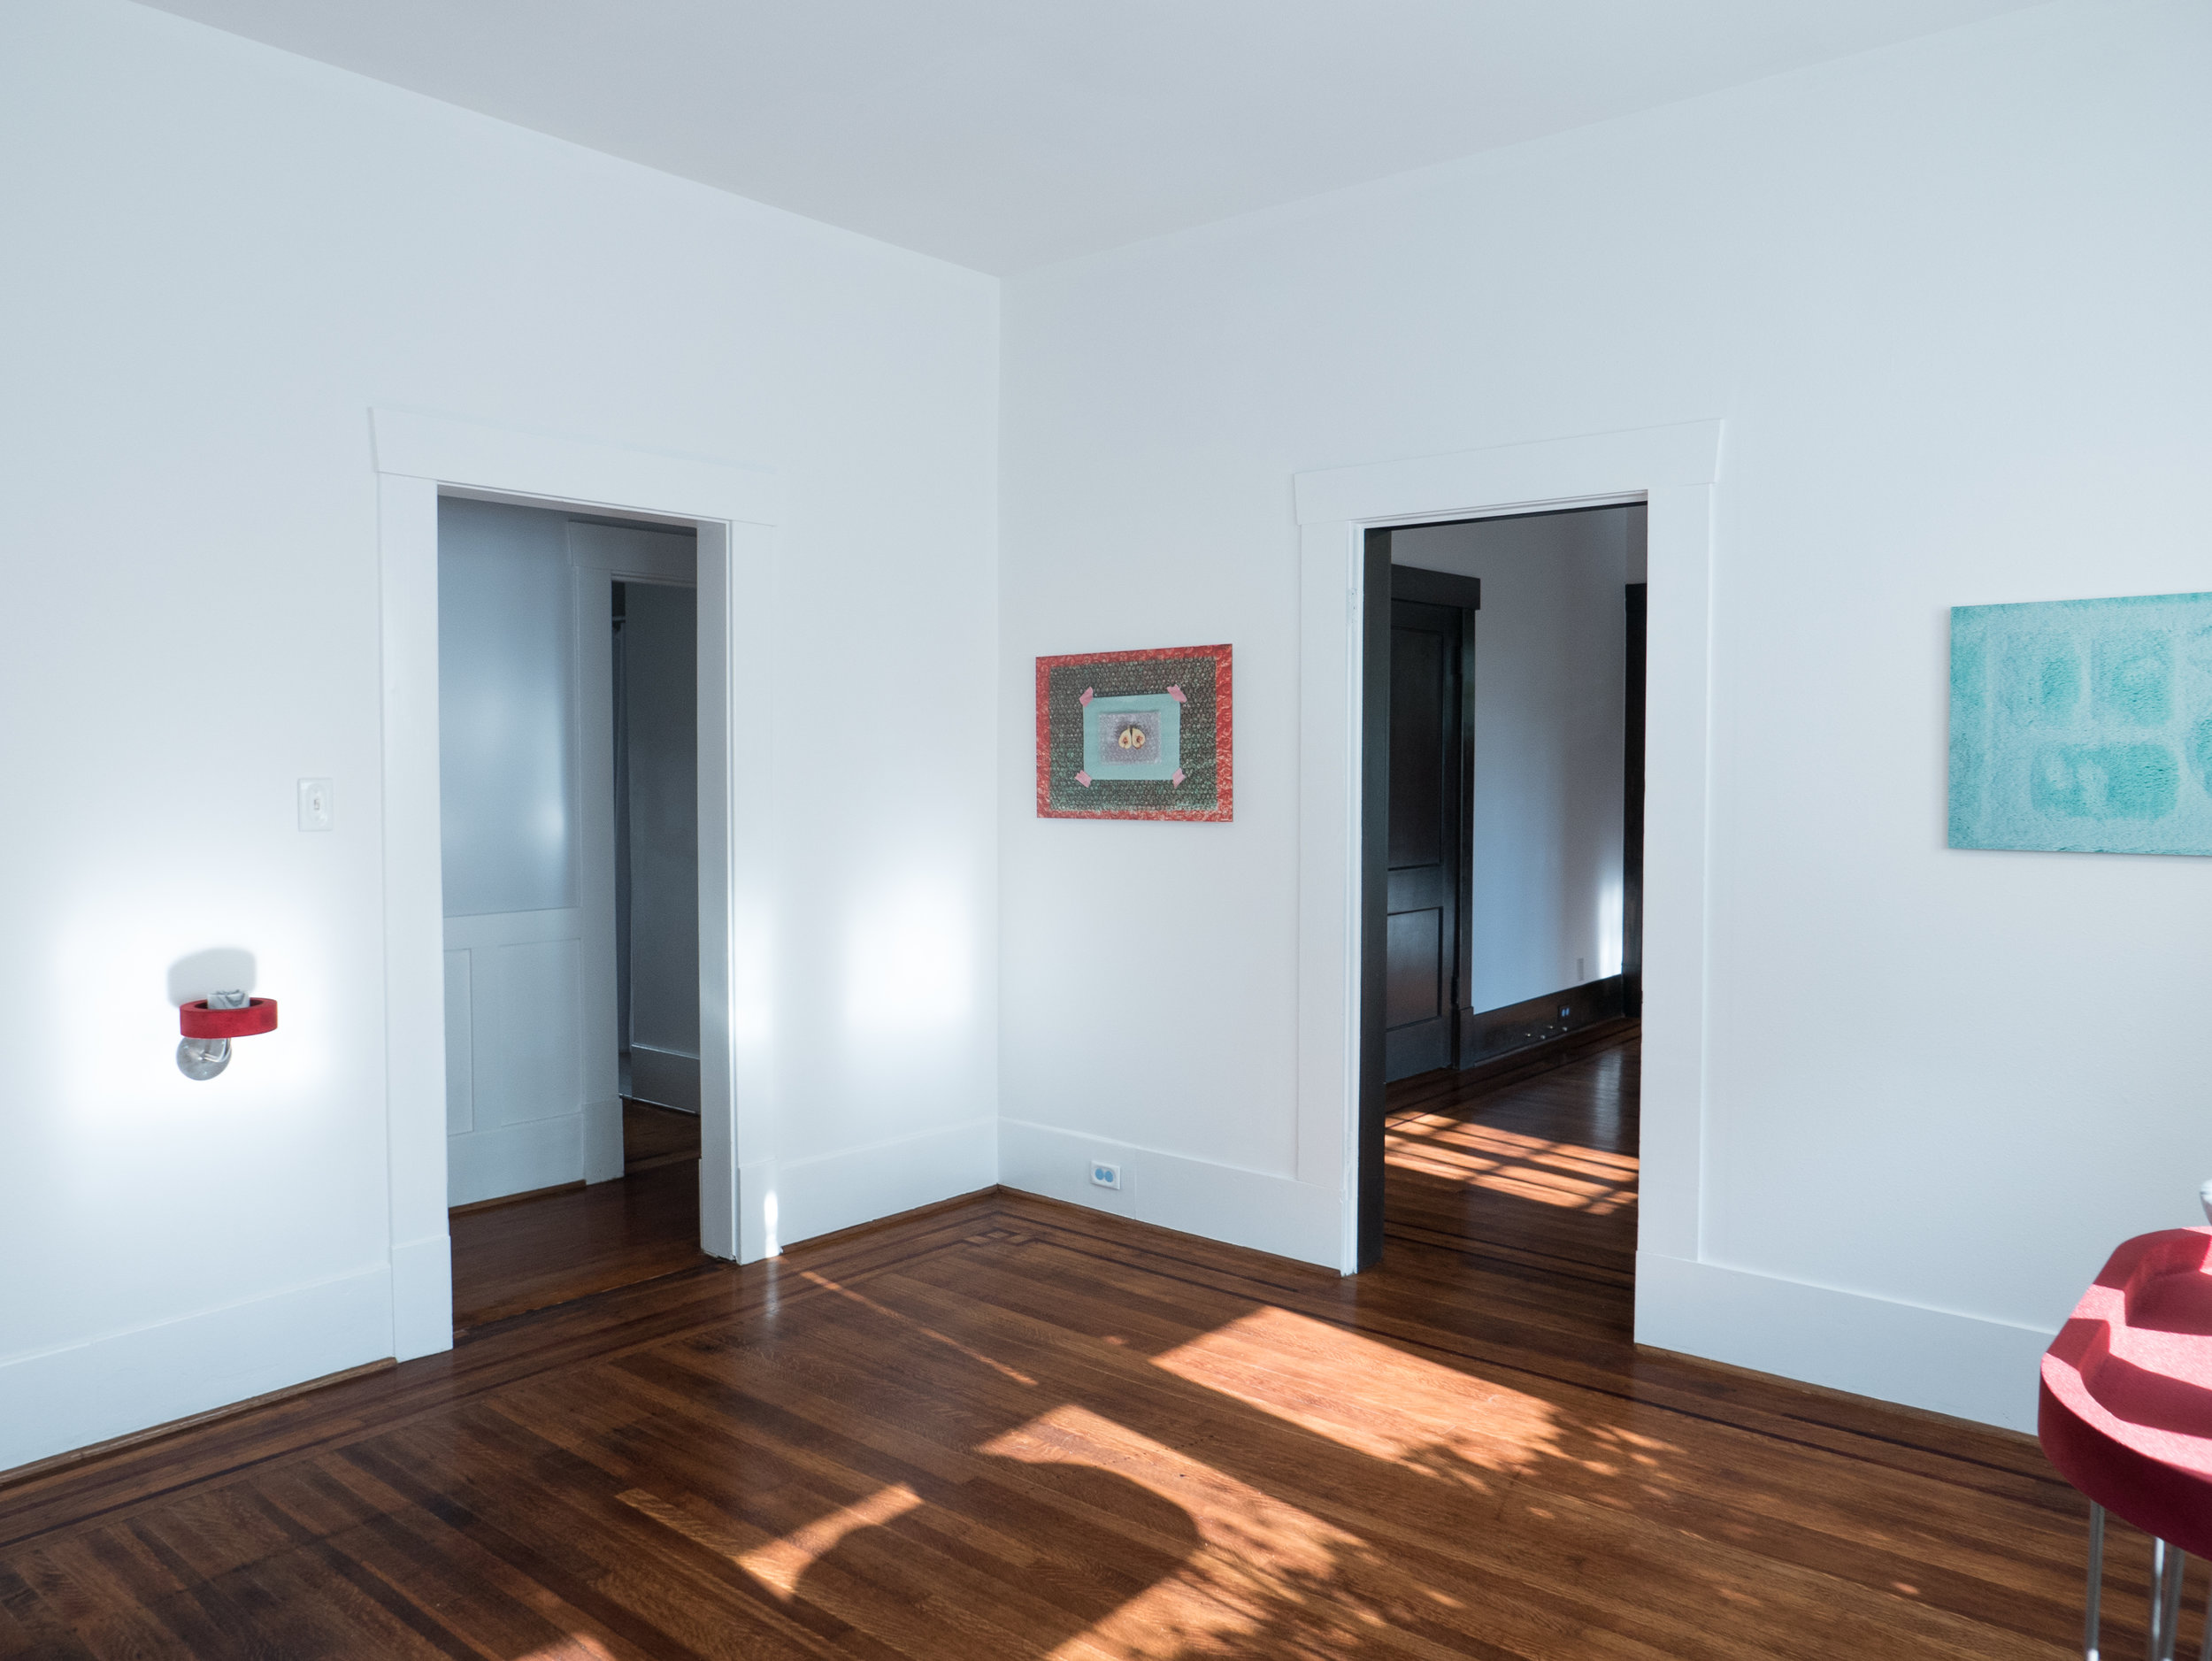 smother Installation Images (14 of 24).jpg